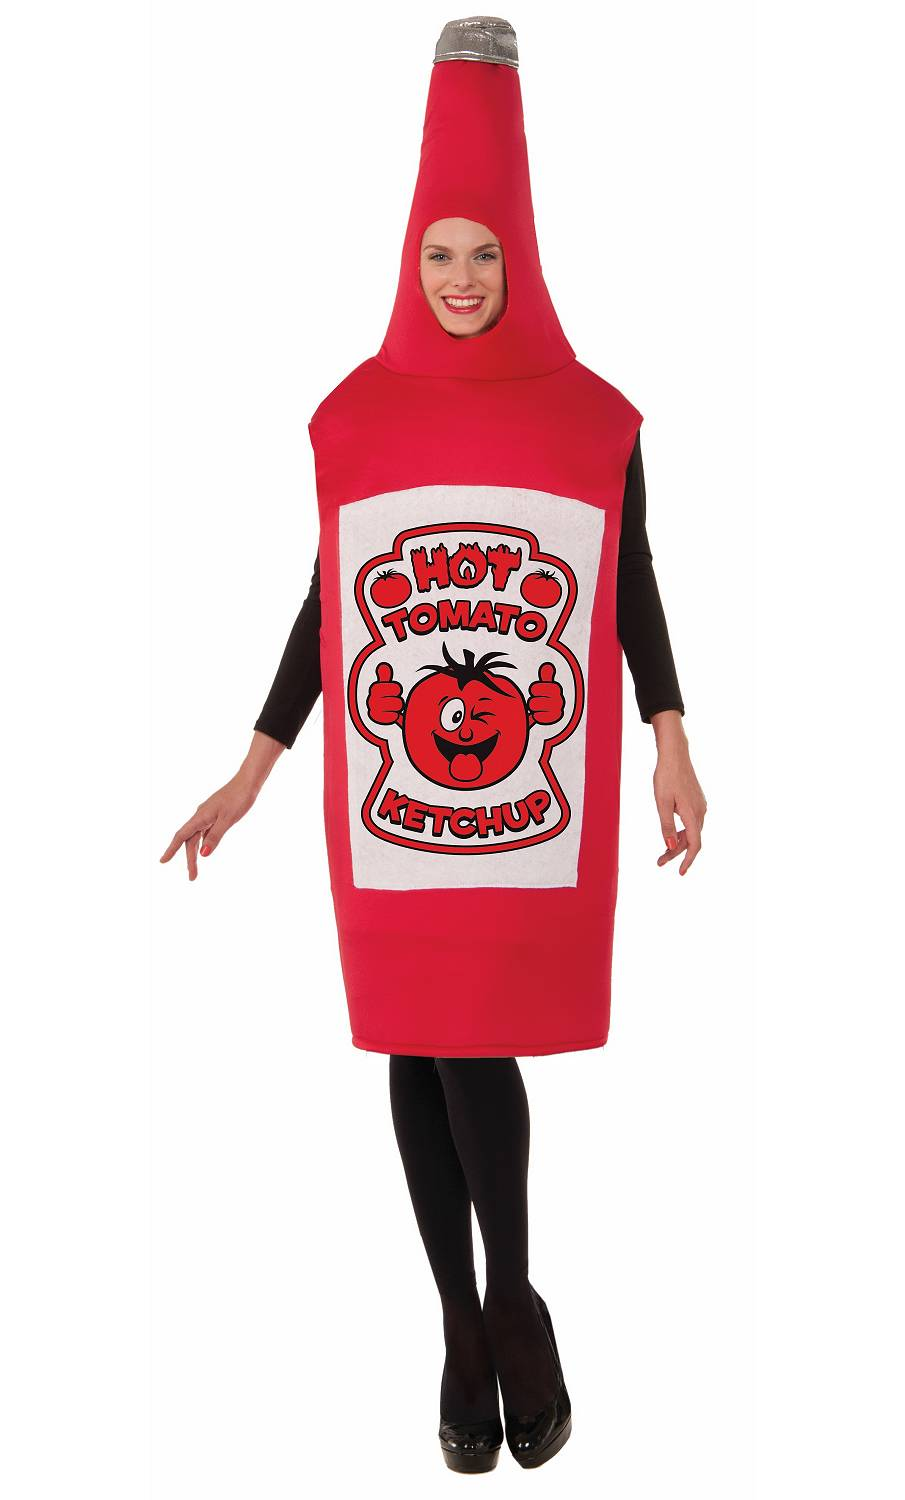 Costume-bouteille-ketchup-2